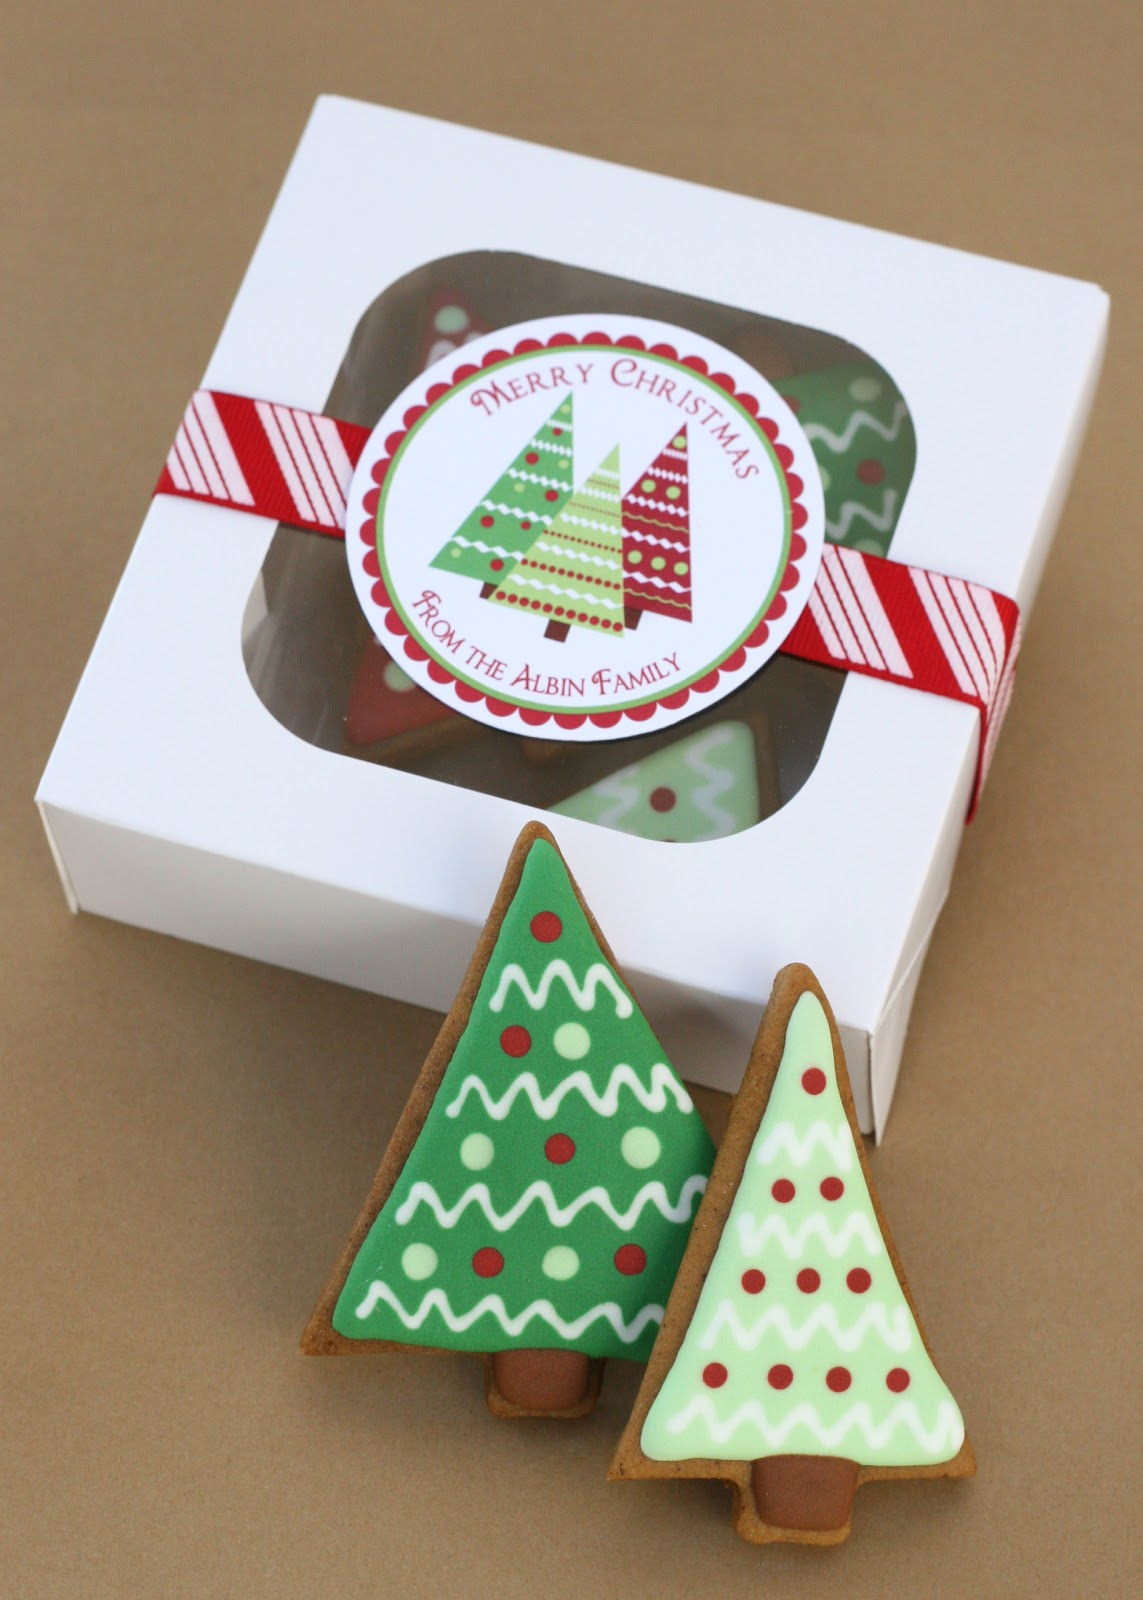 6. Another easy way to package up cookies is this basket made from a paper plate. Find the muffin version here. 7. Instead of gifting cookies, try gifting cookie dough! Our Best Bites shares a fun way to package cookie dough using waxed paper. 8.